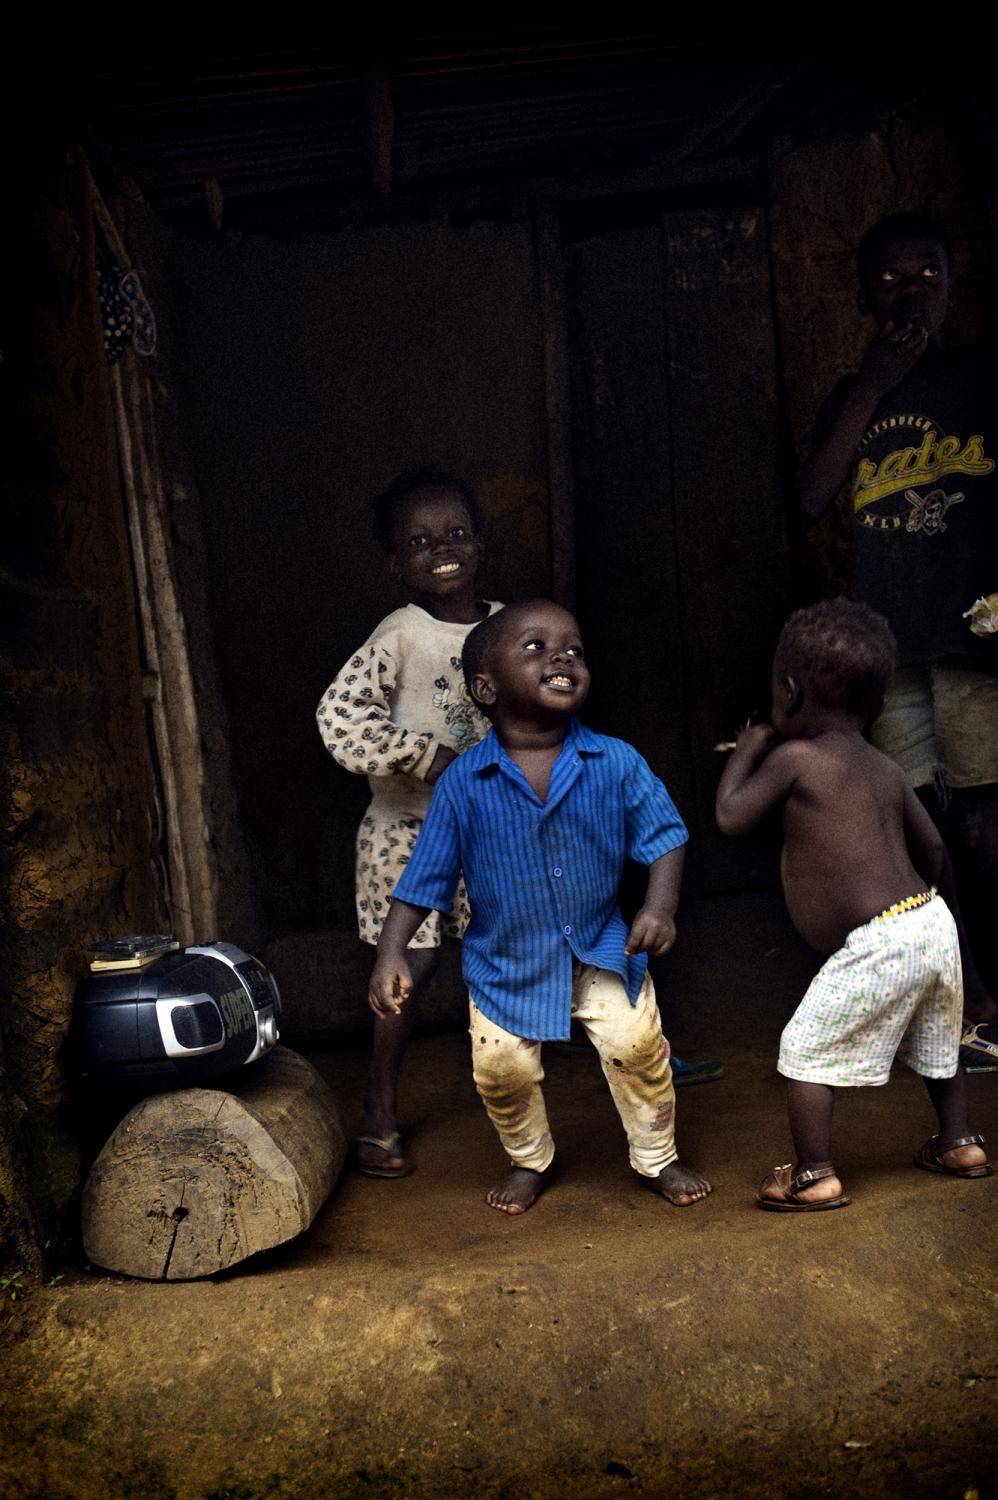 Liberia, Bunny's Town. October 2008. Children dancing with an old radio.